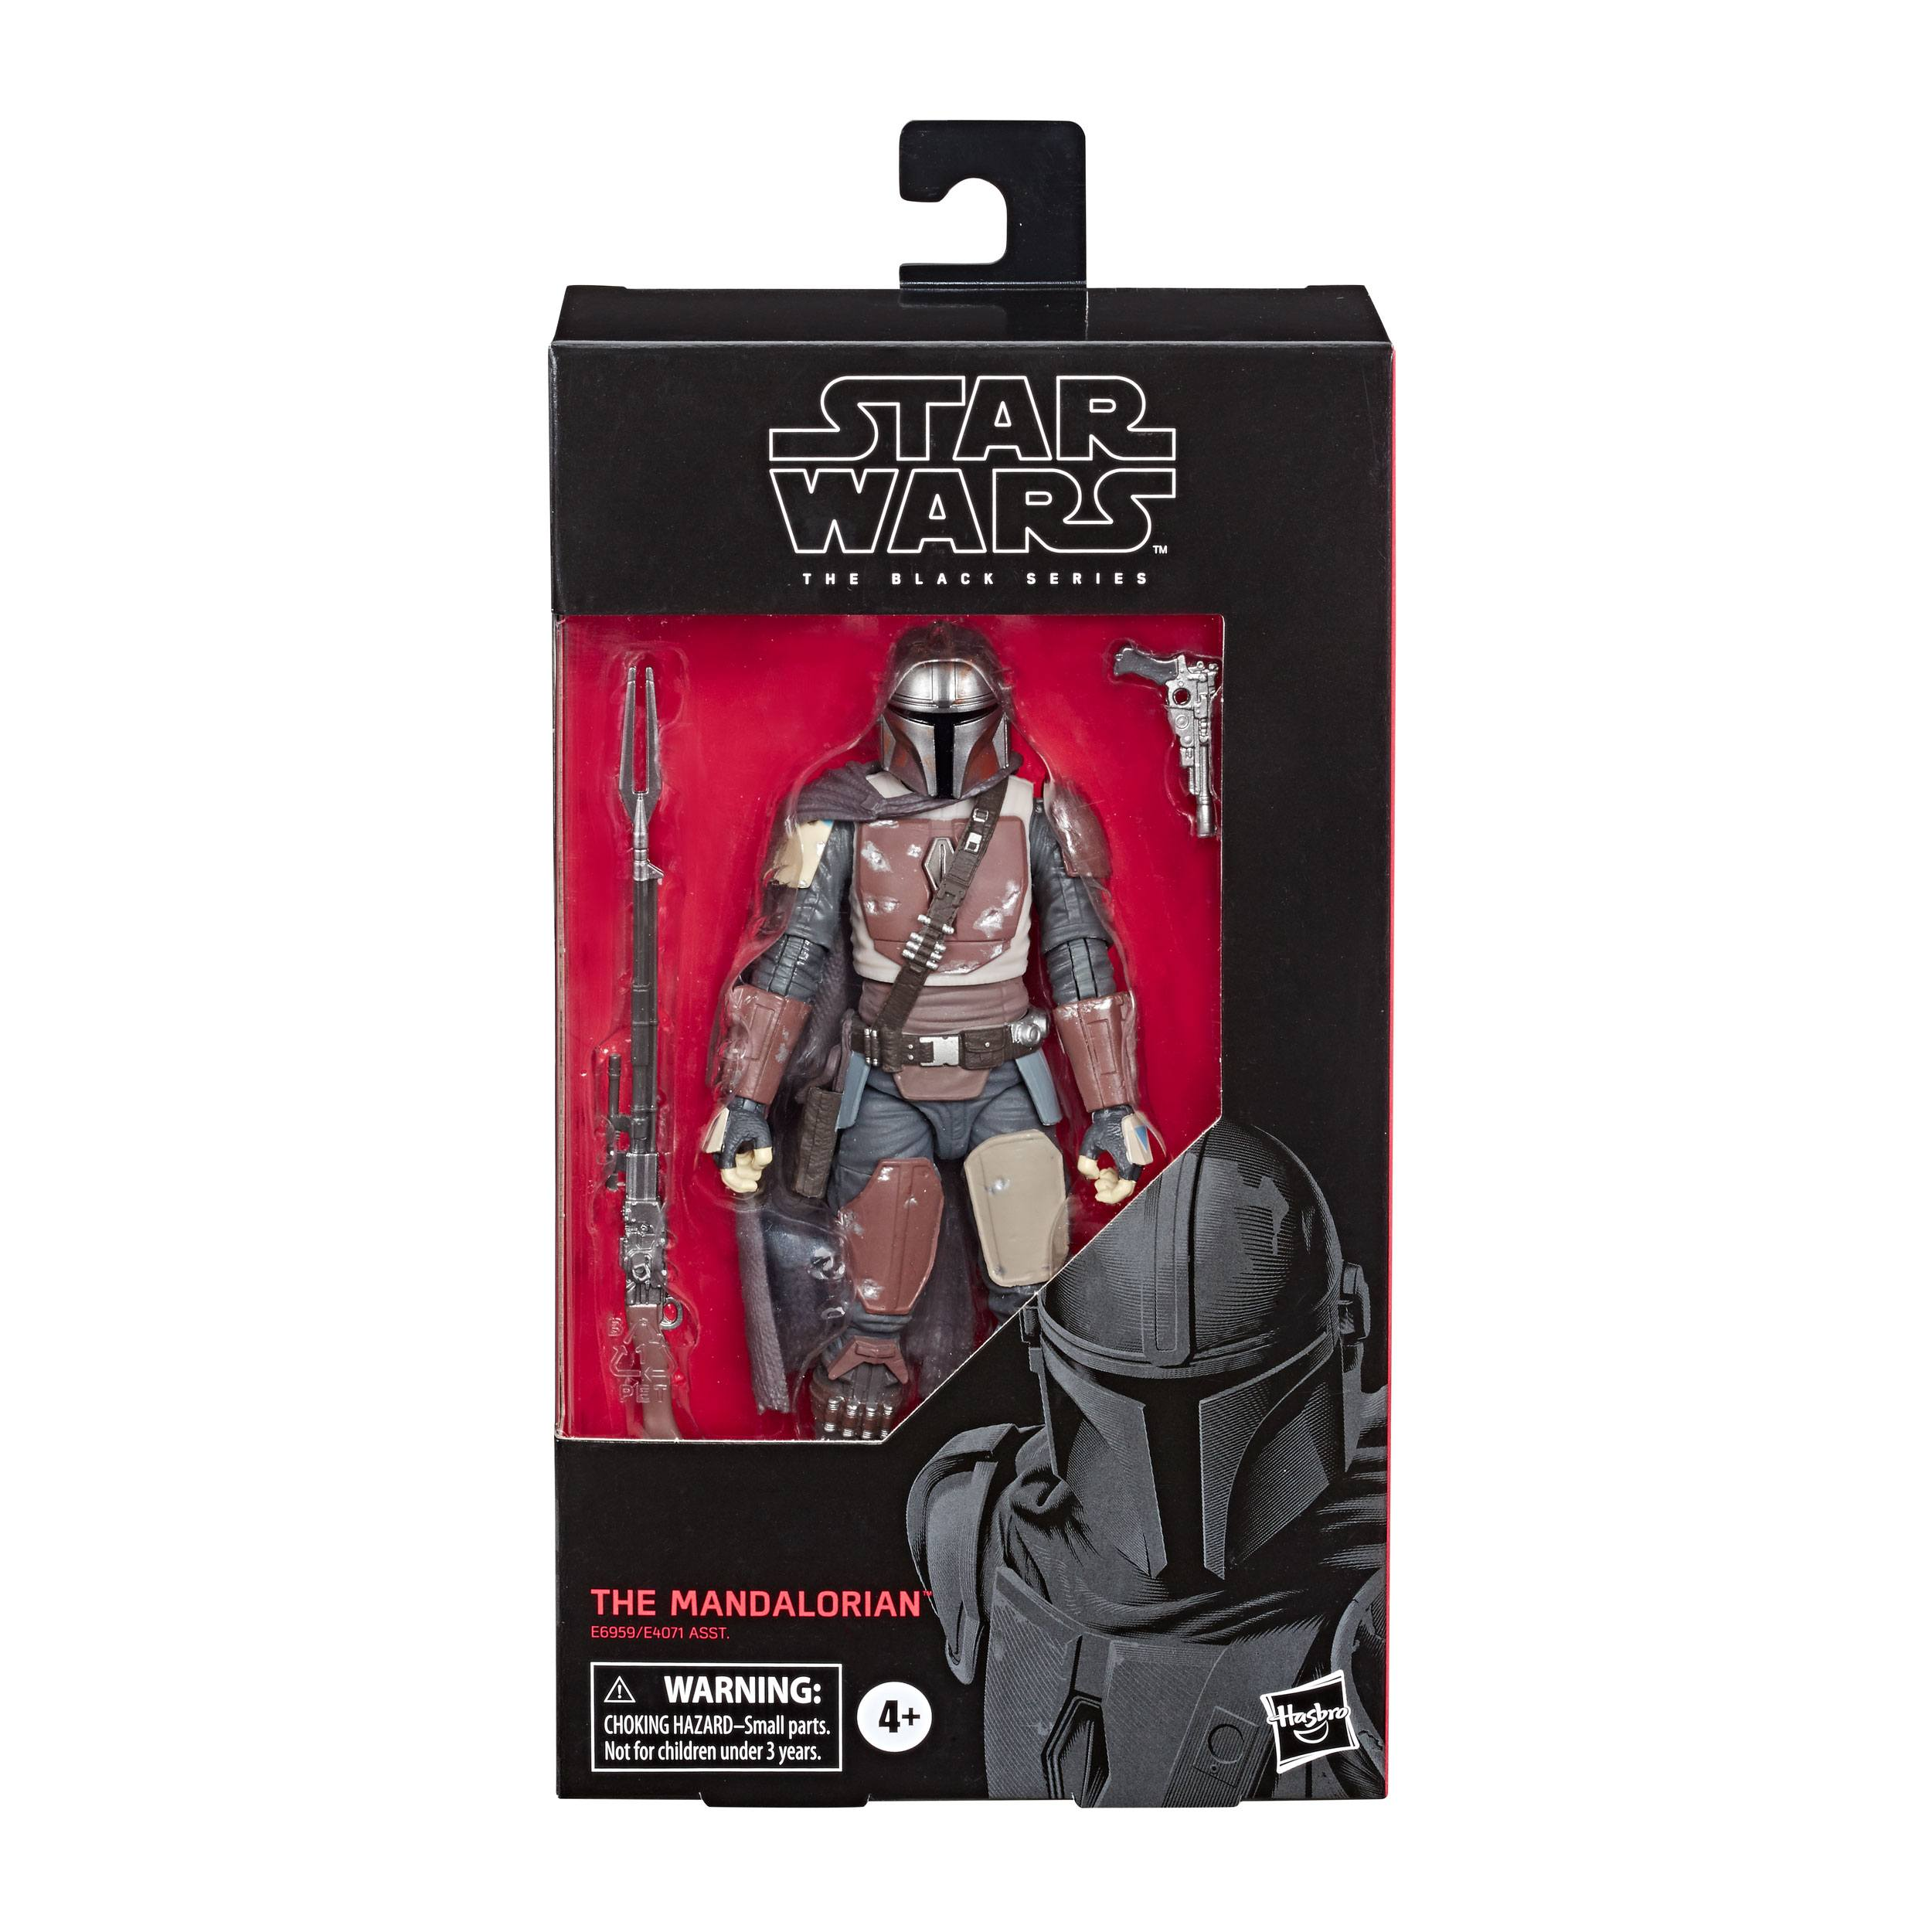 Star Wars The Black Series The Mandalorian Toy 6-inch Scale Collectible Action Figure E6959ES00 5010993622153